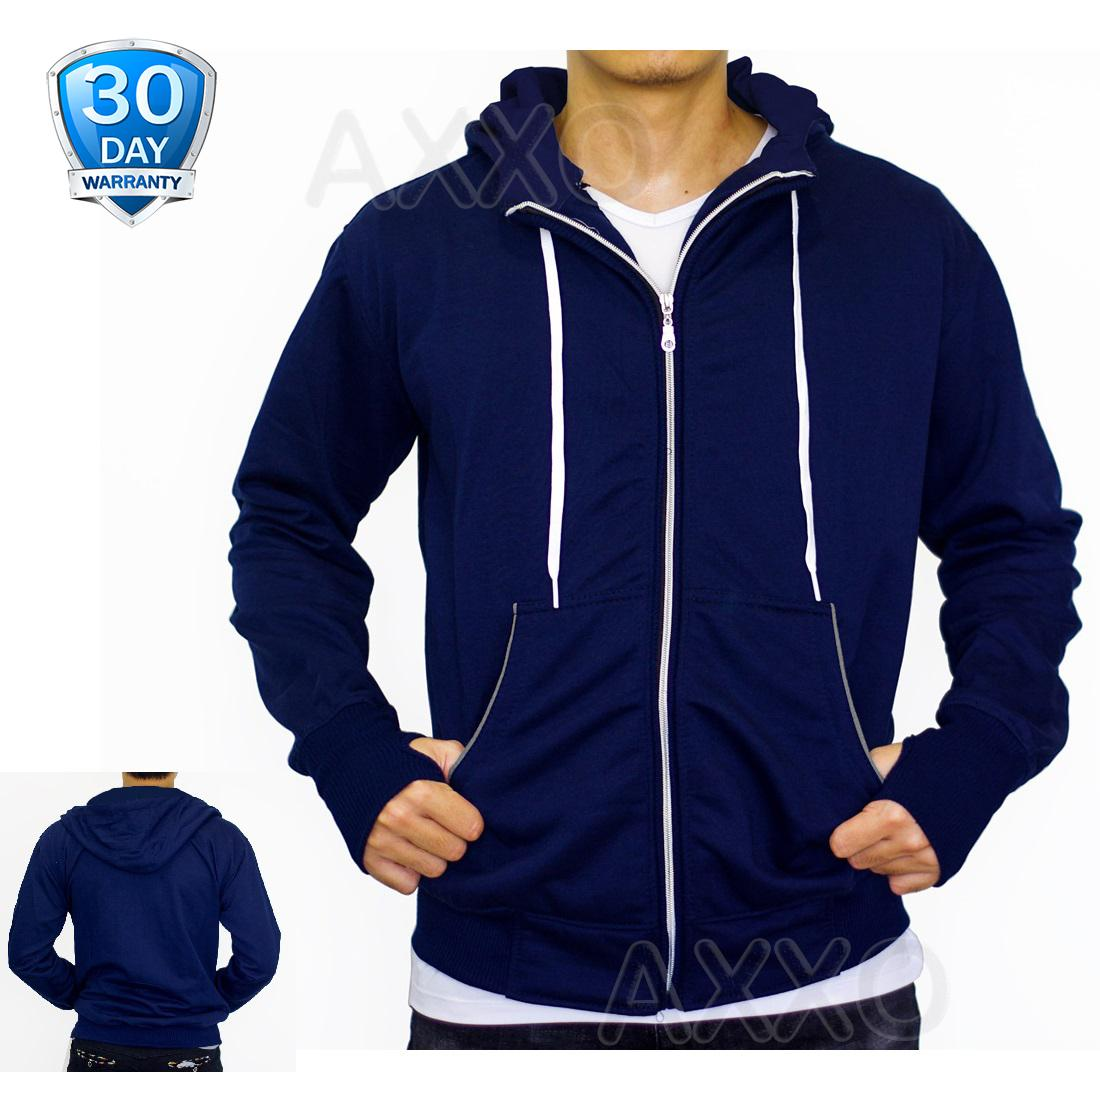 Jaket Sweater Hoodie Polos Switer Lubang Jempol Model Ariel Jaket Model Korea Pria Mens Jacket Windproof